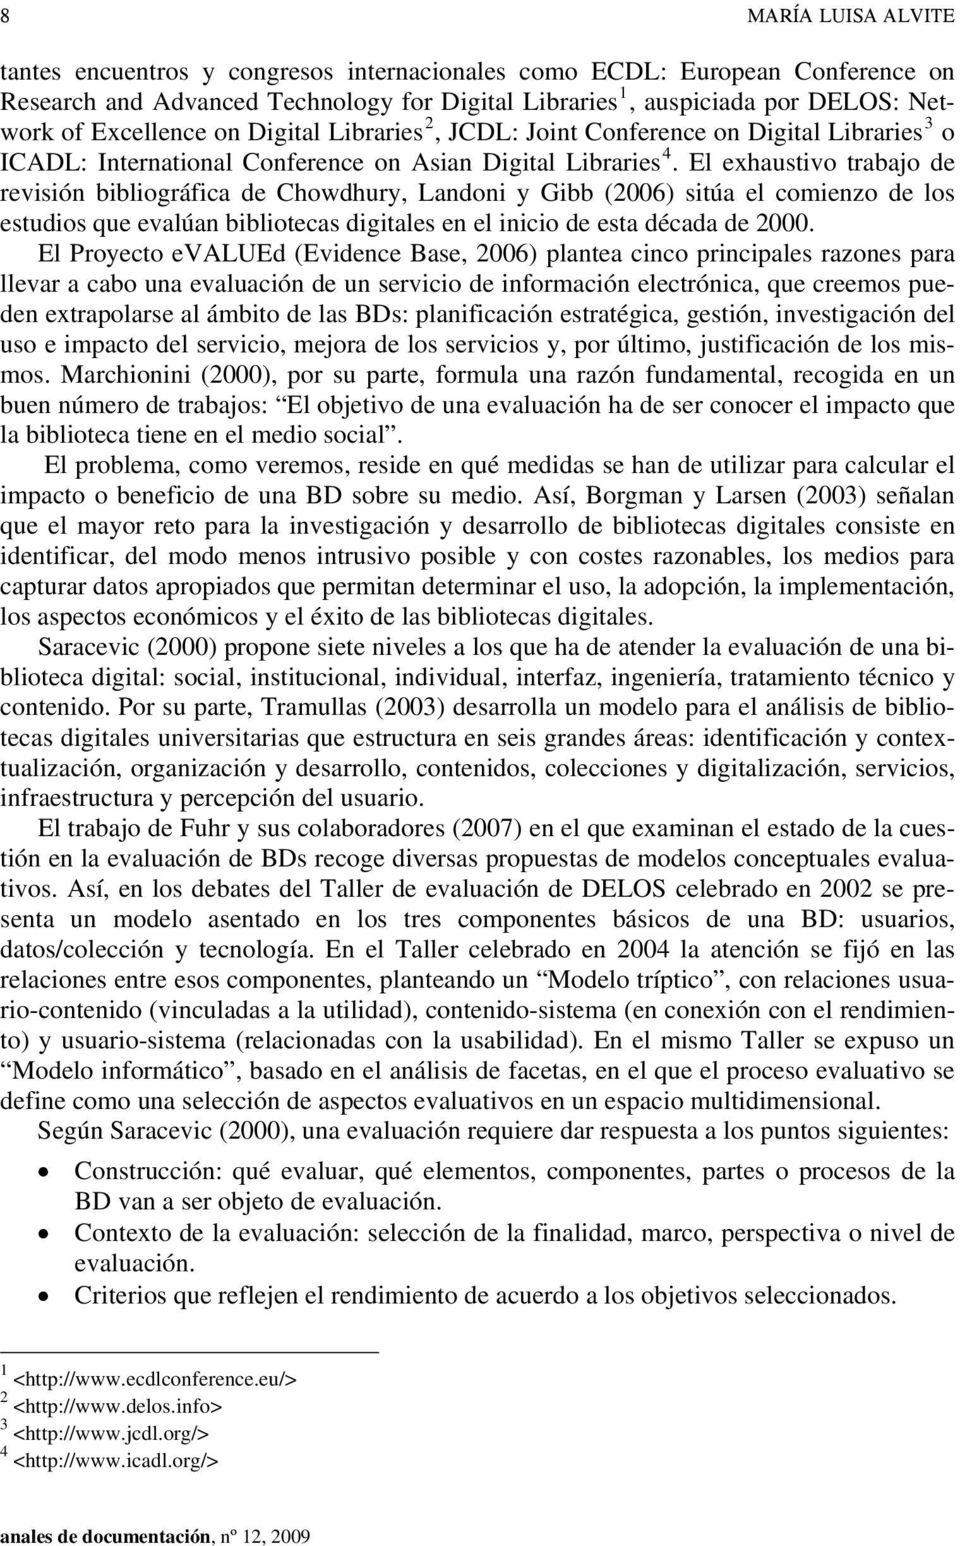 Anales de Documentación - PDF